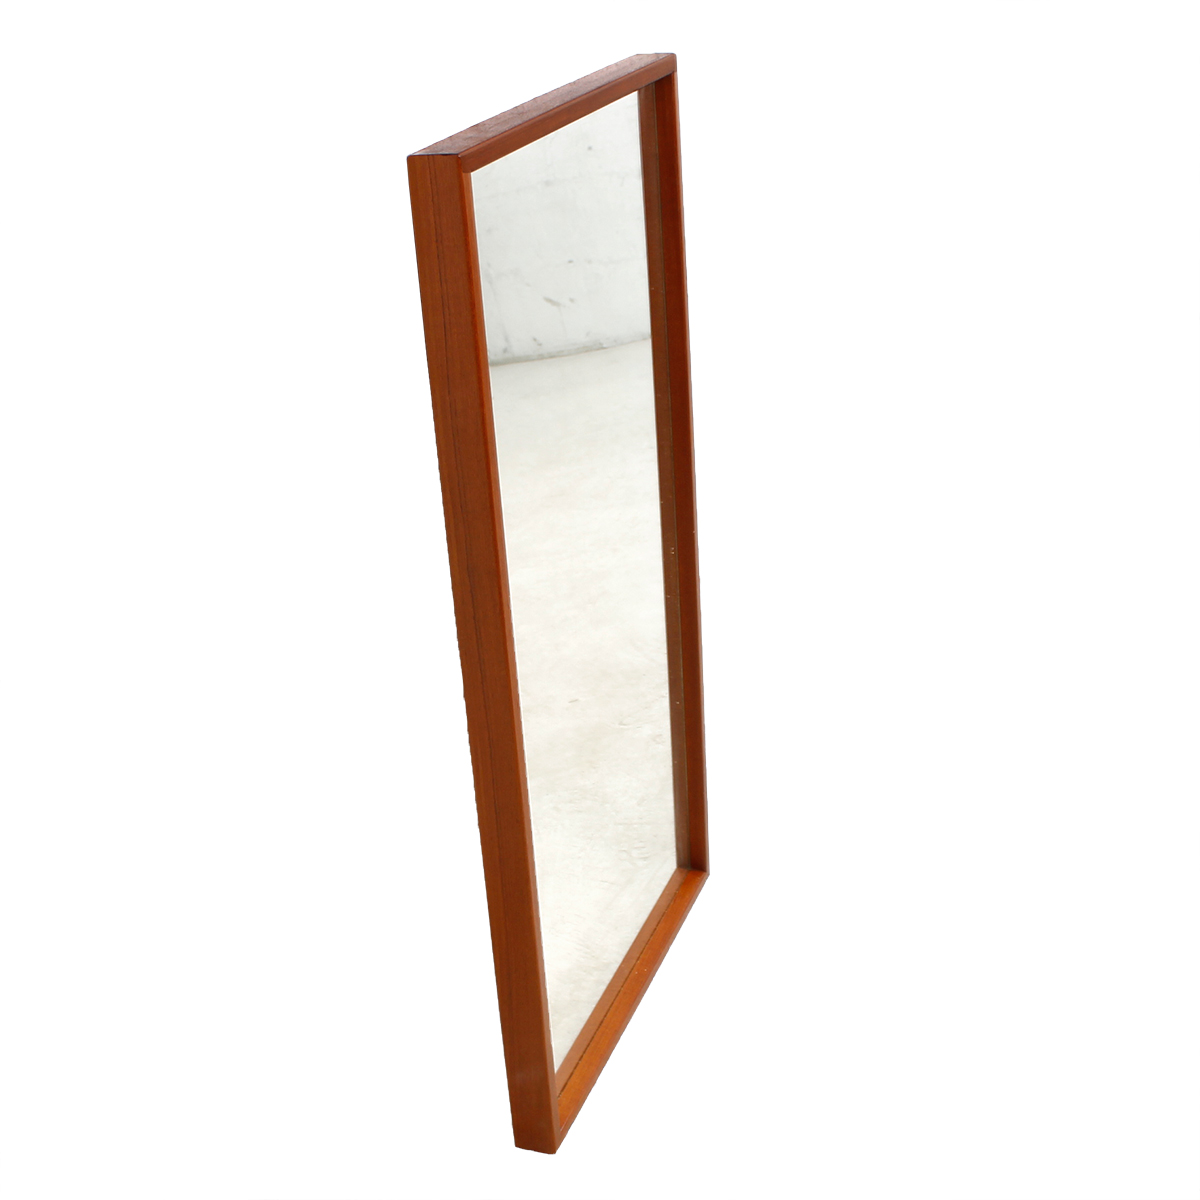 Danish Modern Teak Compact Mirror with Beveled Edges